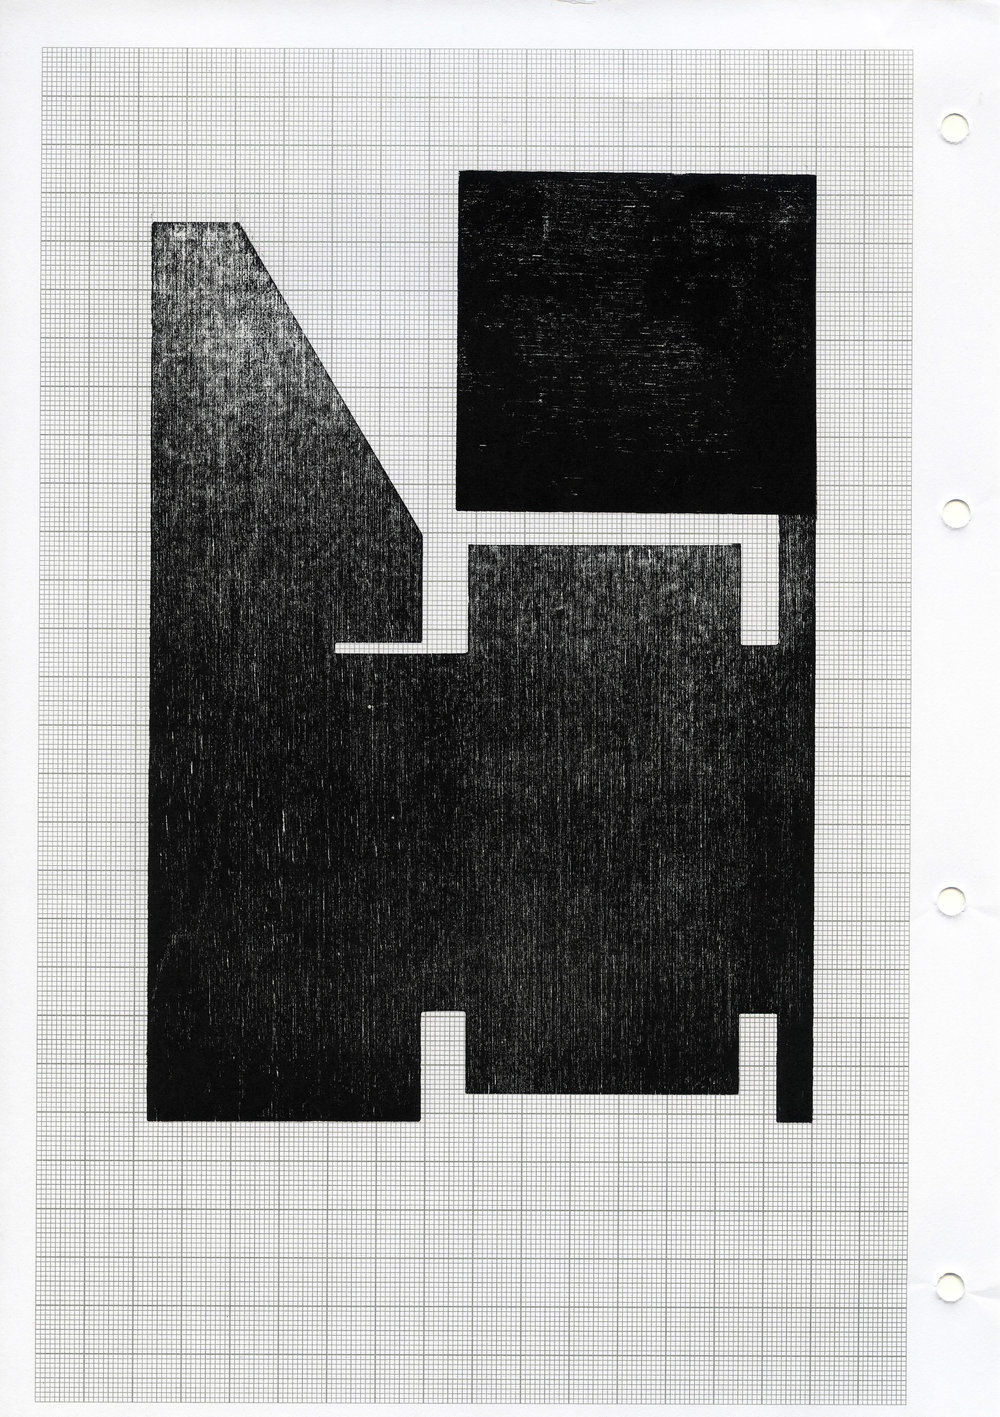 Seher Shah, 'Hewn (square on cut)', 2014, woodcut on A4 grid paper, monoprint, 29.7 x 21 cm. Image courtesy the artist and Nature Morte.